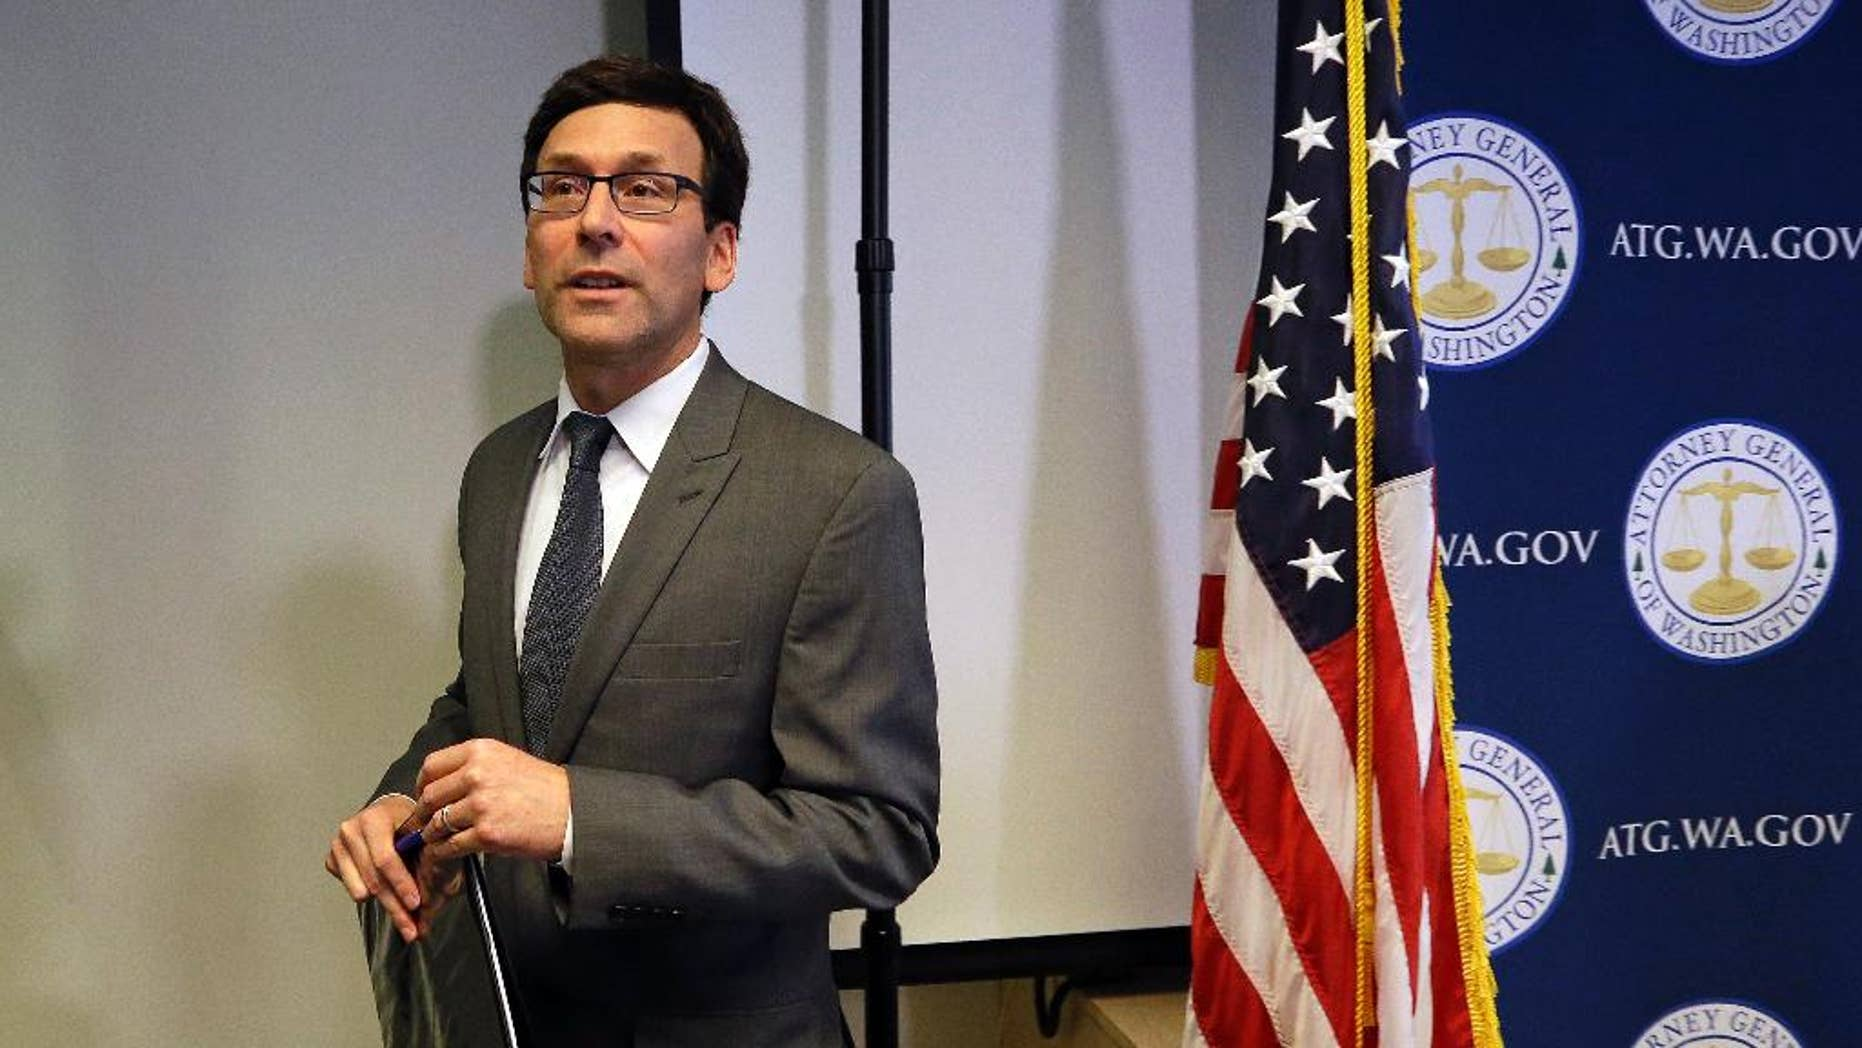 Washington State Attorney General Bob Ferguson finishes a news conference about the state's response to President Trump's revised travel ban Thursday, March 9, 2017, in Seattle. Legal challenges against Trump's revised travel ban mounted Thursday as Washington state said it would renew its request to block the executive order. It came a day after Hawaii launched its own lawsuit, and Ferguson said both Oregon and New York had asked to join his state's legal action. (AP Photo/Elaine Thompson)